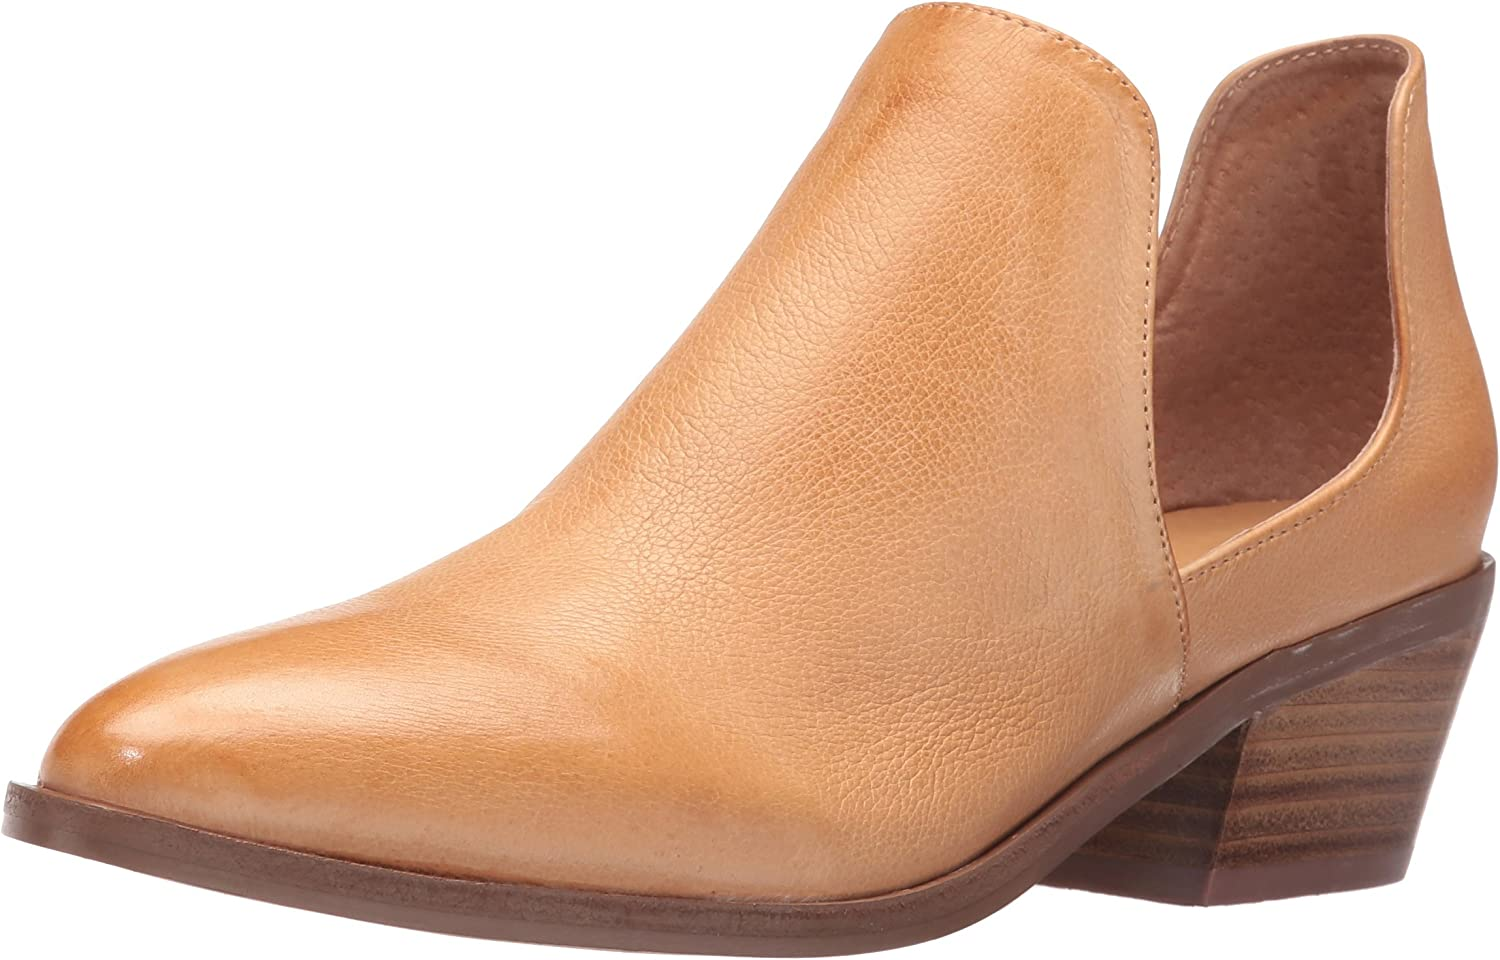 Chinese Laundry Women's Focus Ankle Bootie